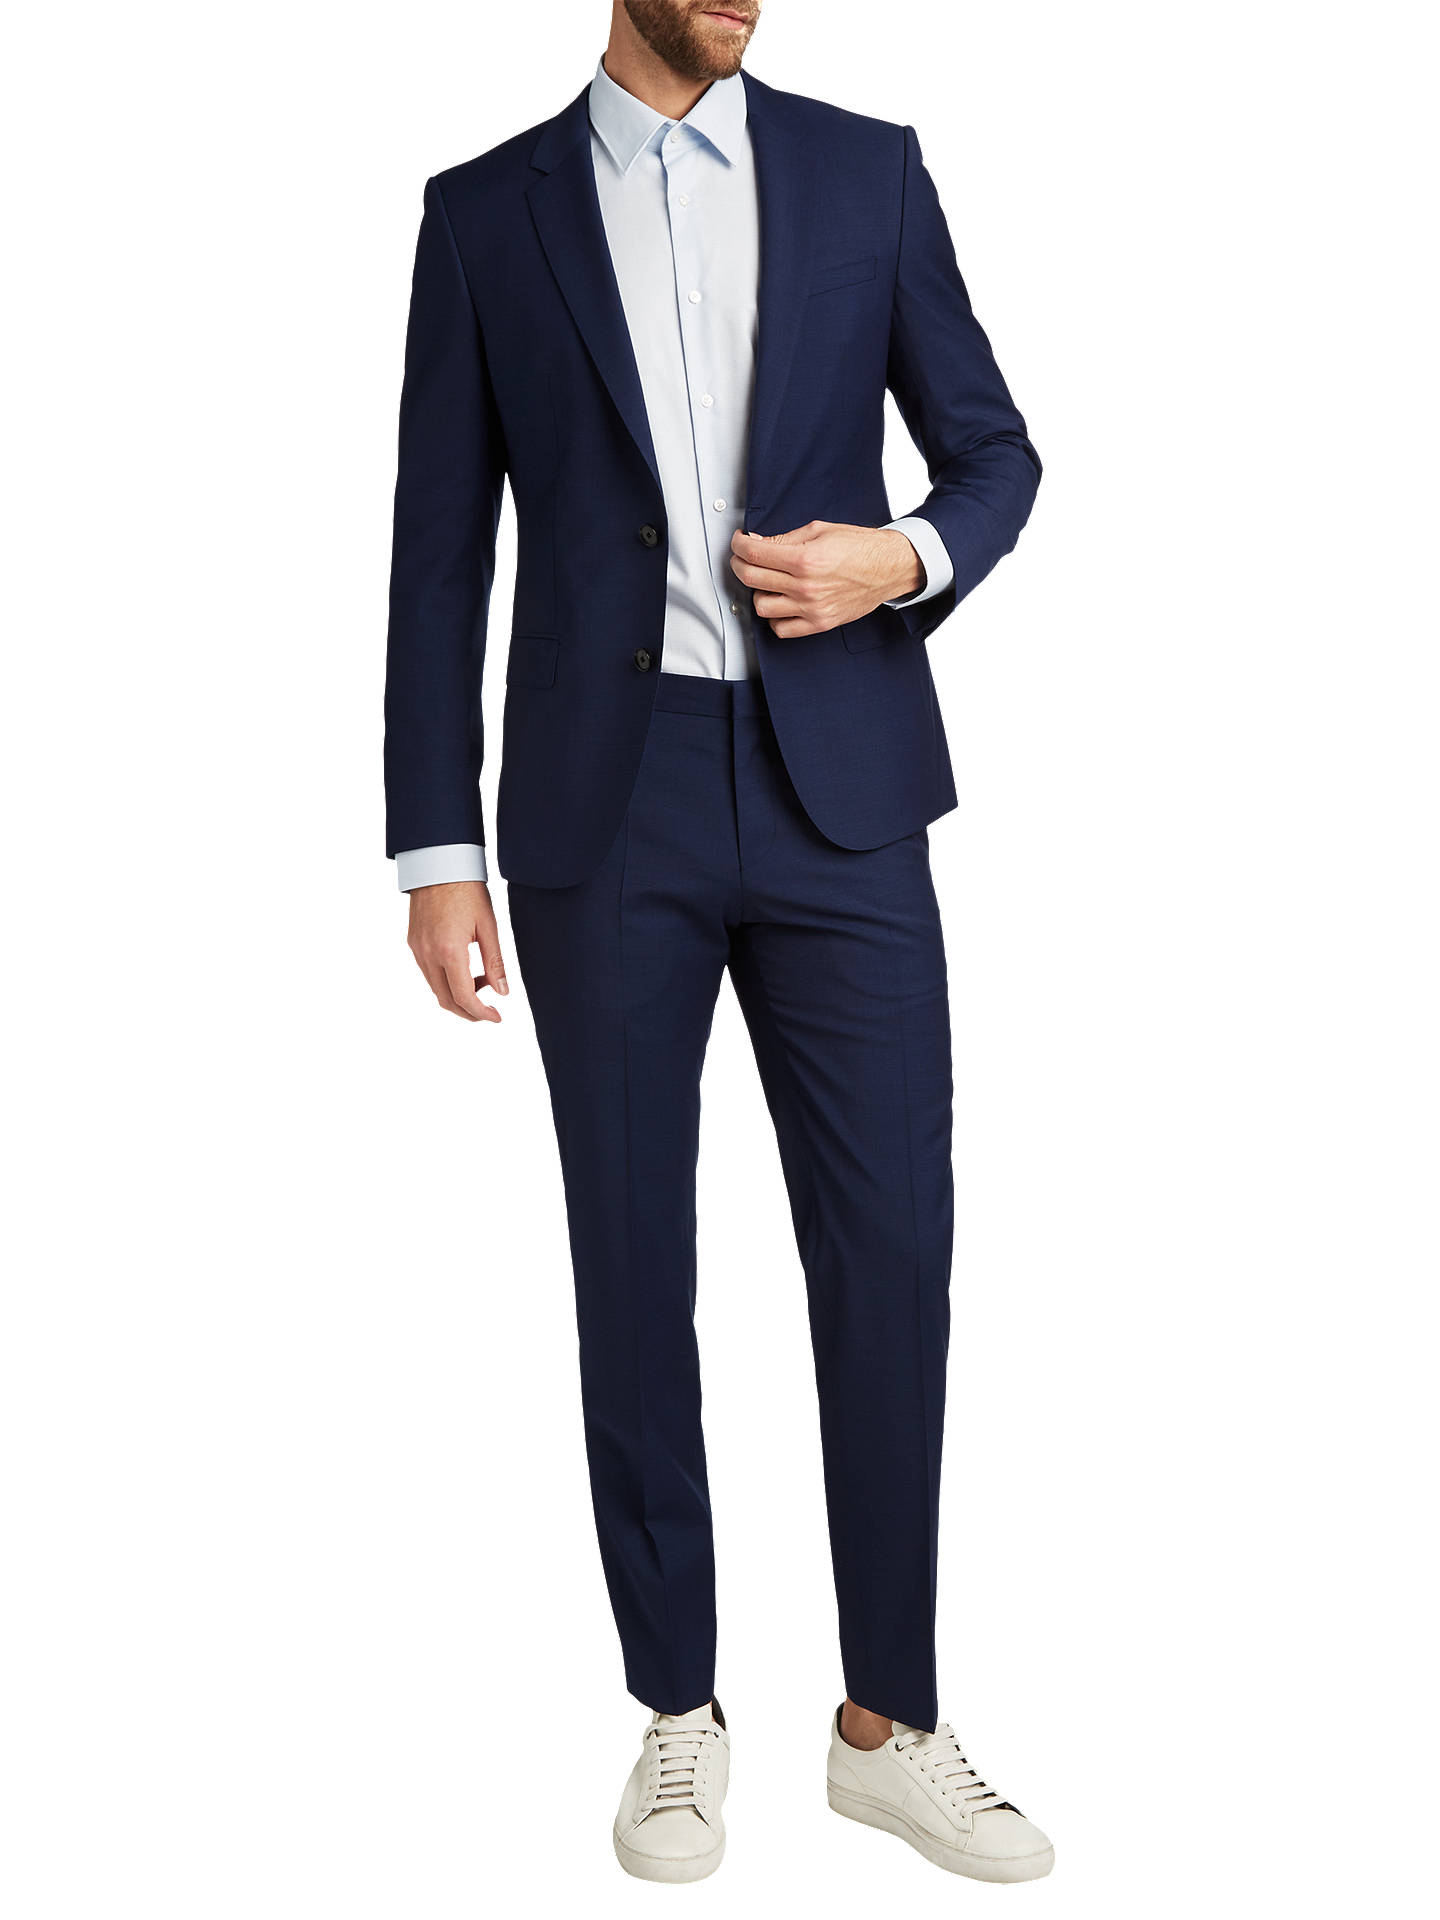 cbbbd9924 ... Buy HUGO by Hugo Boss Henry/Griffin Virgin Wool Slim Fit Suit Jacket,  Navy ...